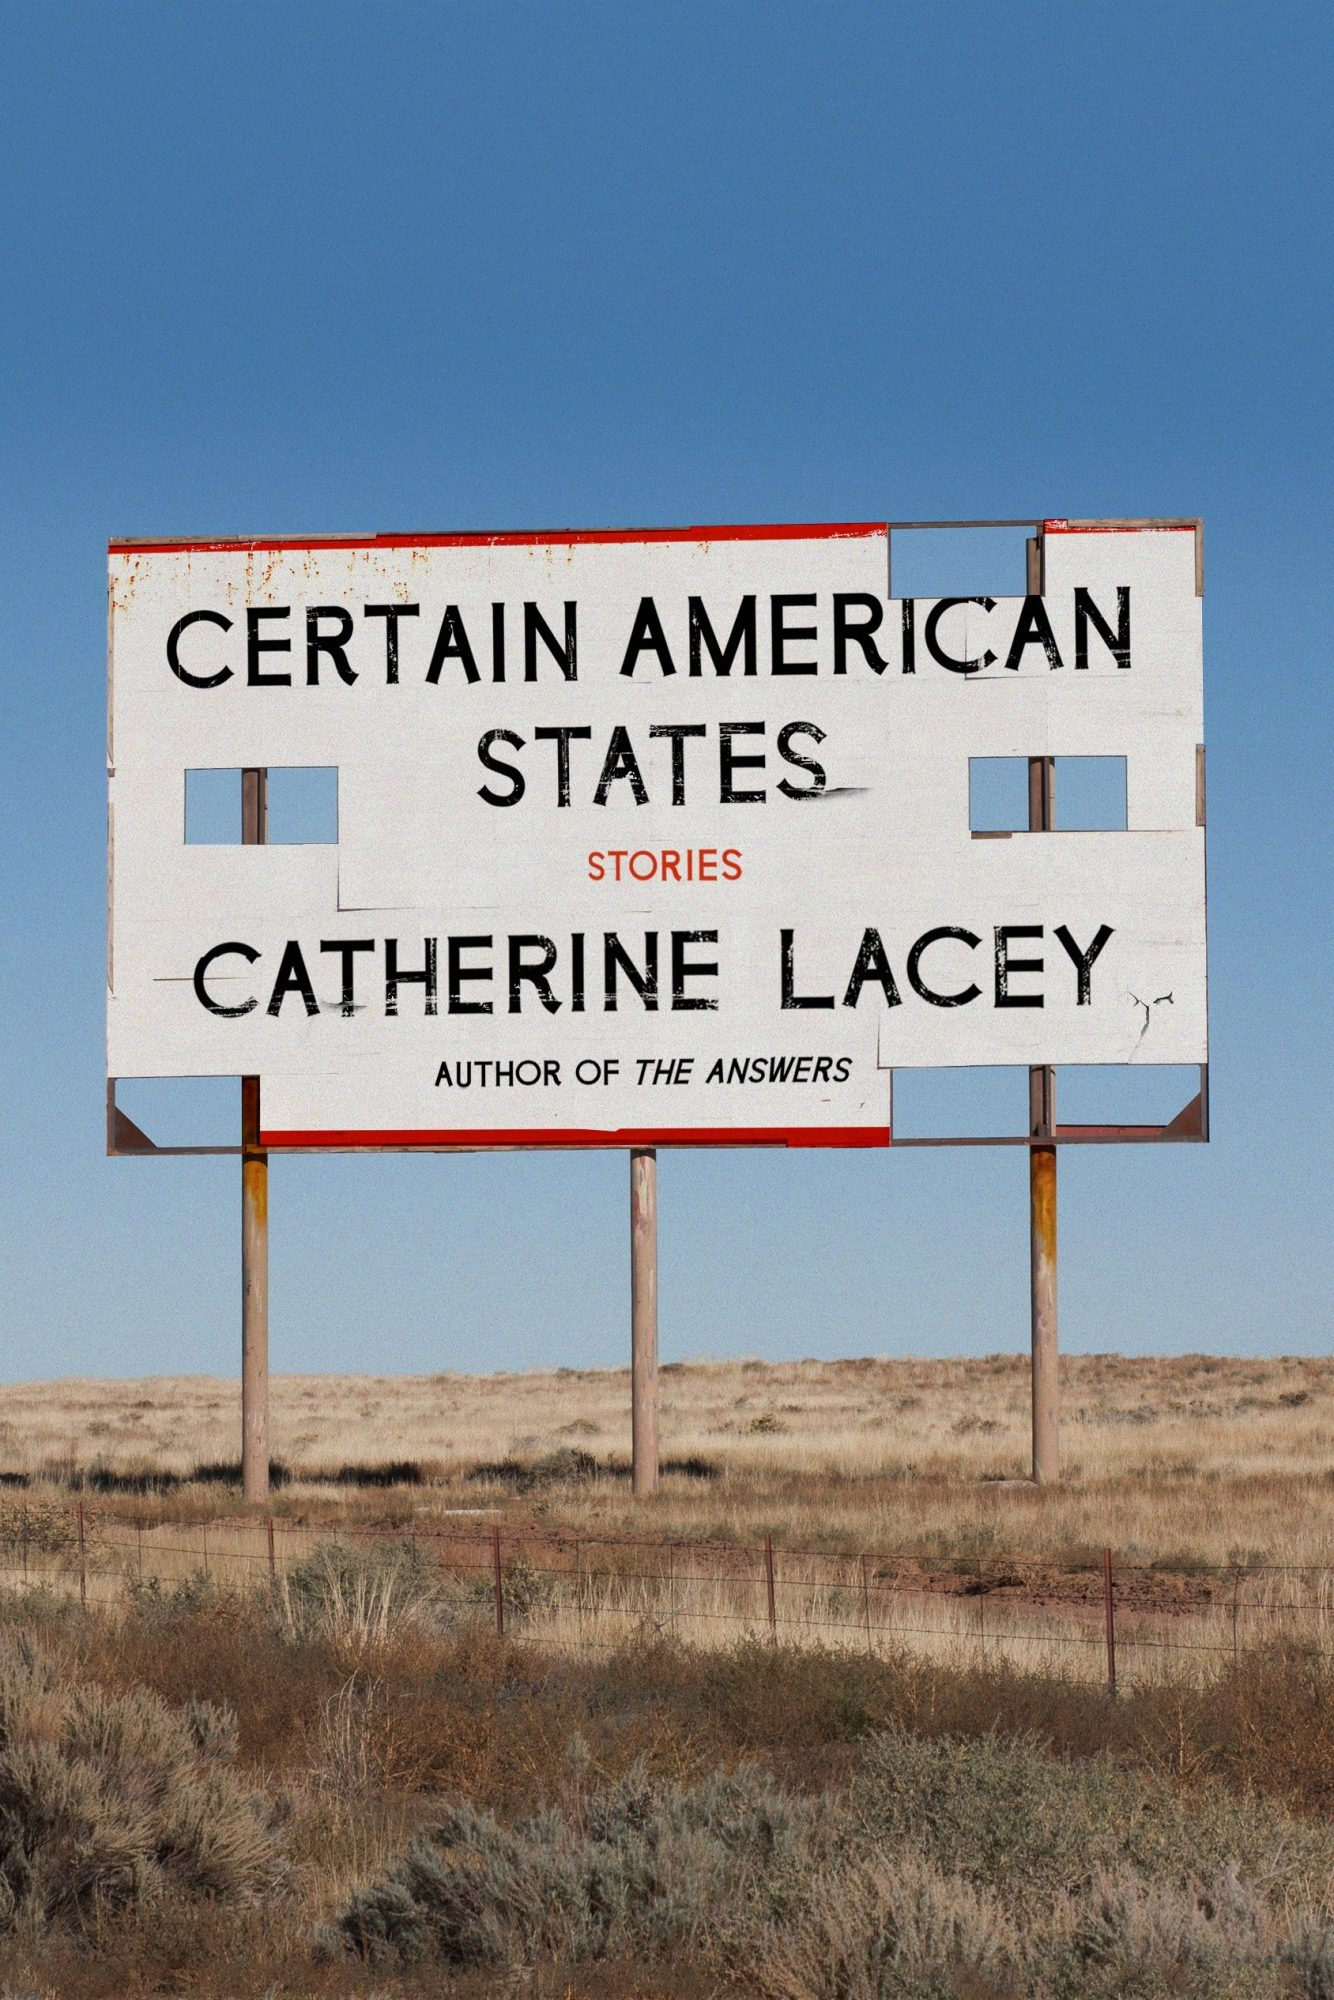 Certain American States: Stories by Catherine Lacey